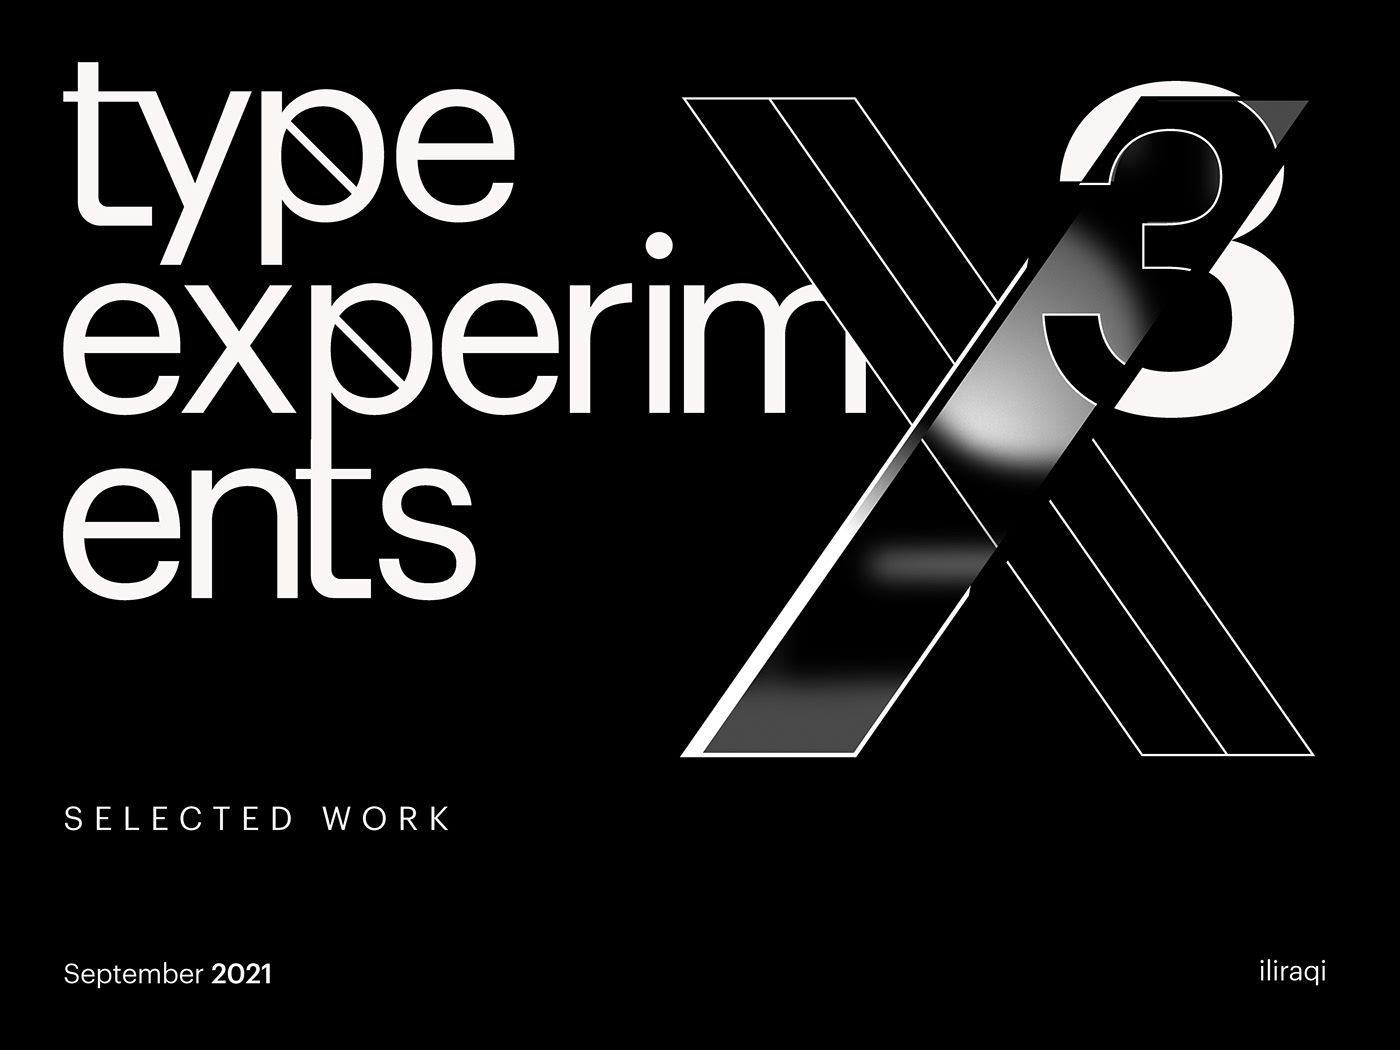 bw experiments graphic design  lettering type typo typographic typography   typography design Work